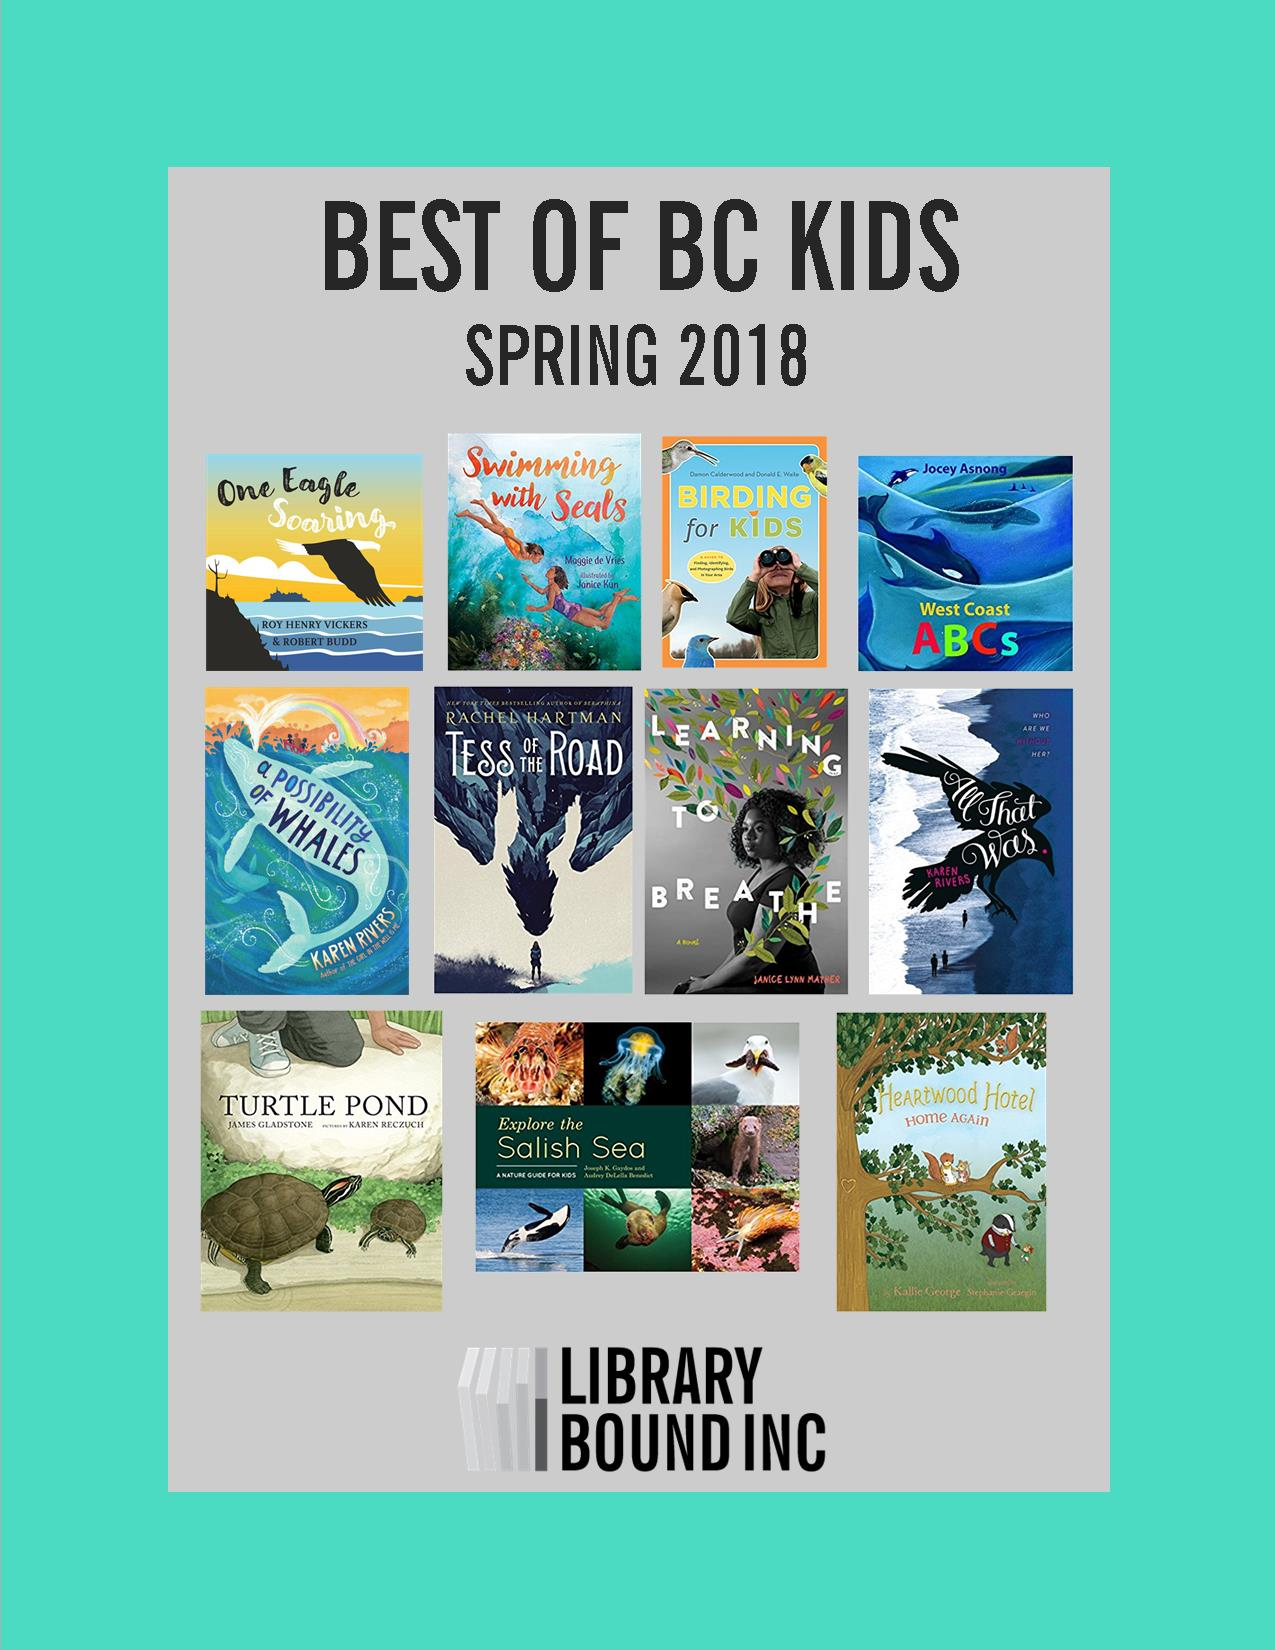 Best of BC Kids Spring 2018